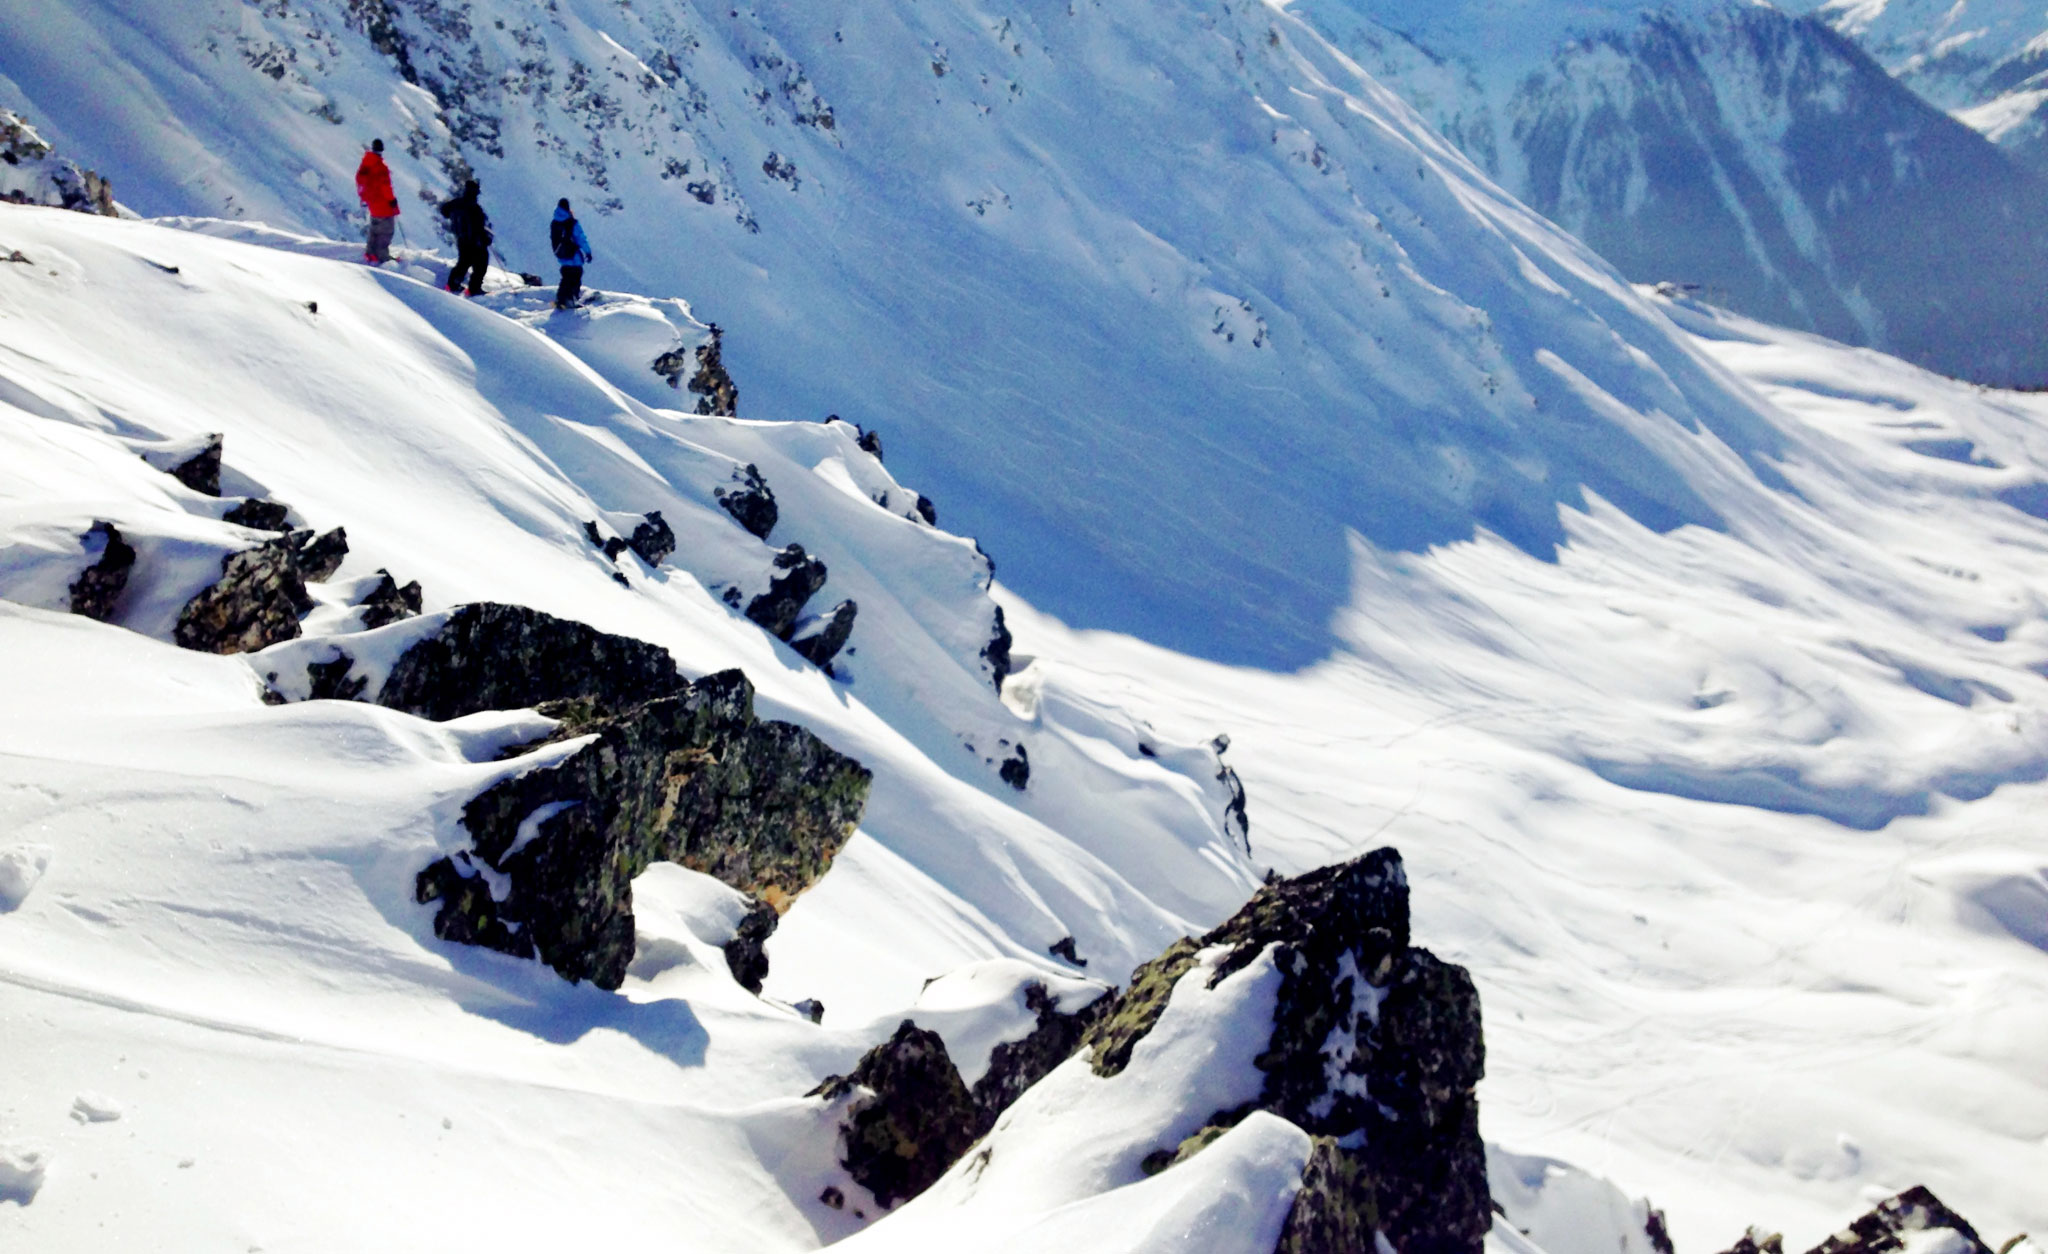 The view in France, where Parker White shot most of his X Games Real Ski Backcountry part.